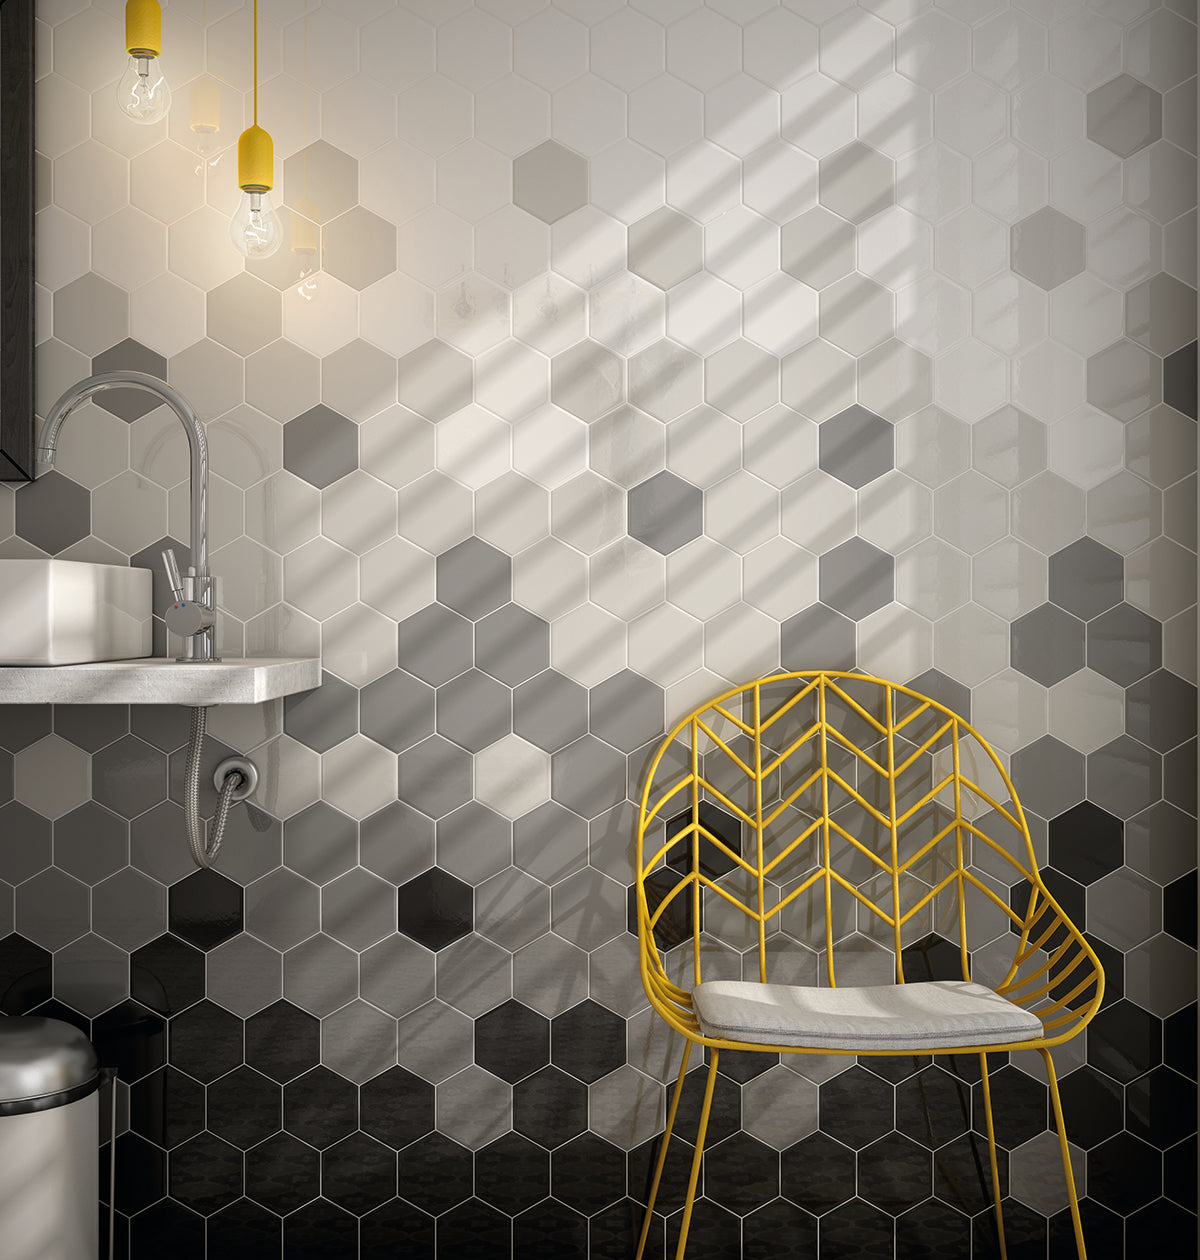 Black and White Geometric Bathroom Tiles